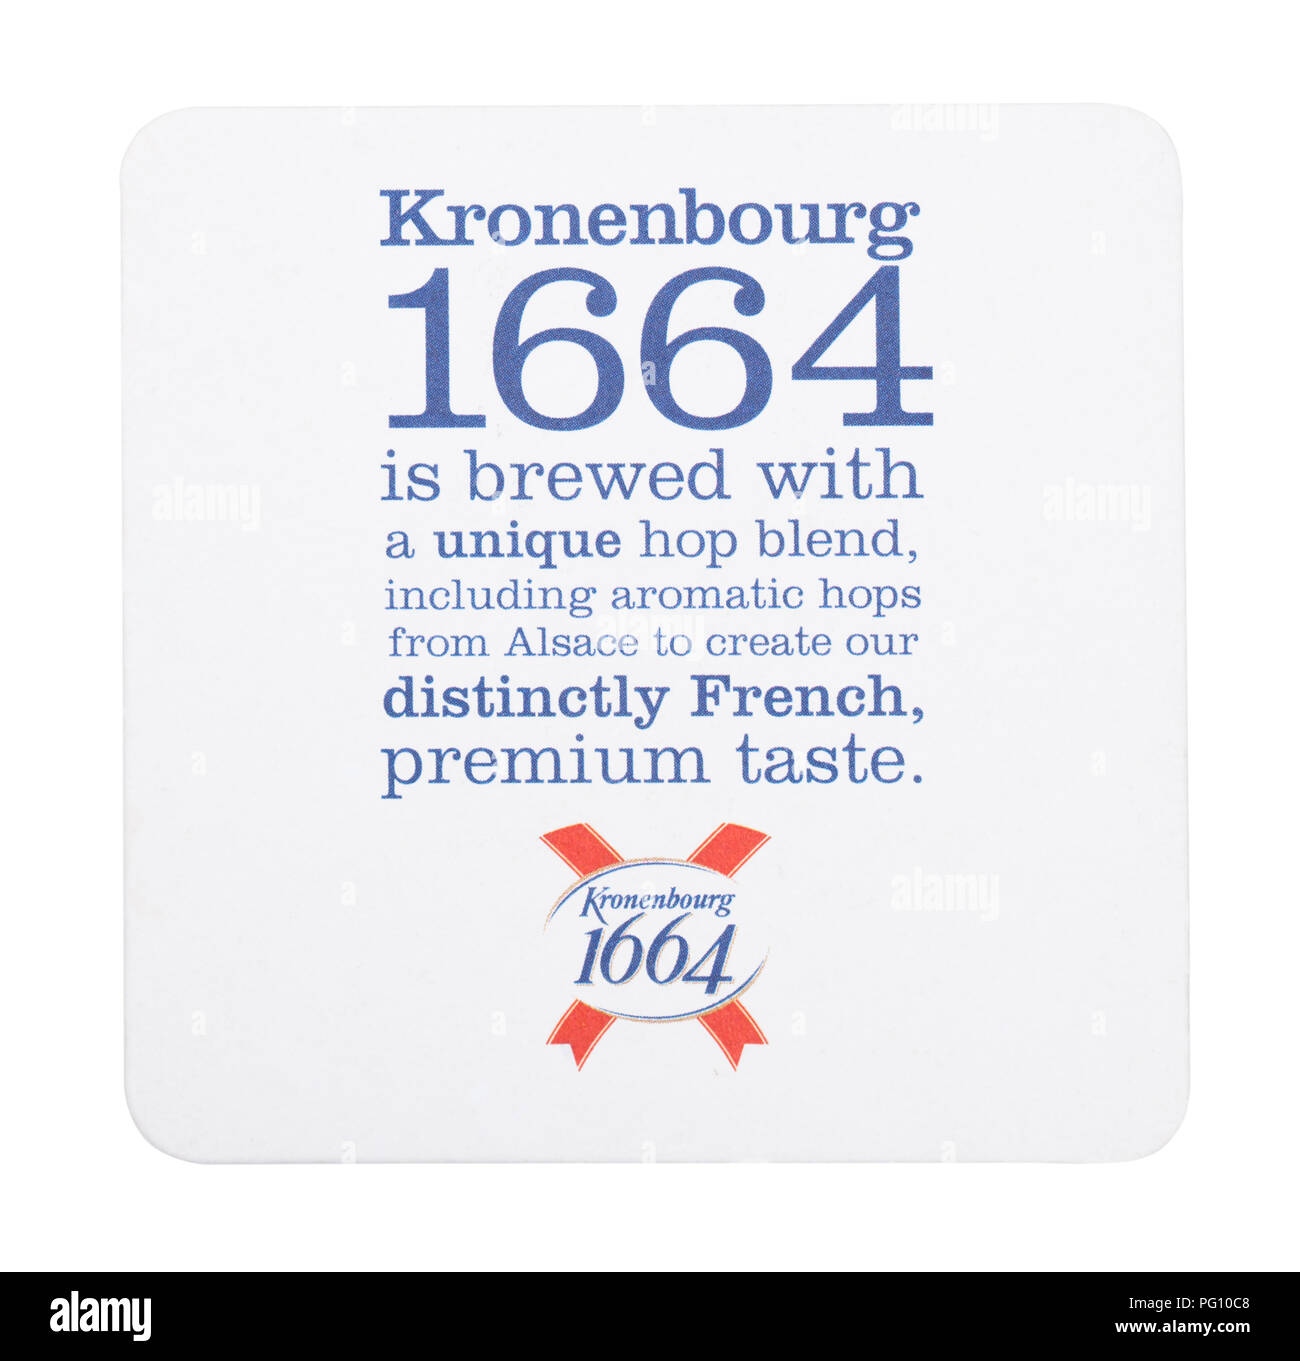 LONDON, UK - AUGUST 22, 2018: Kronenbourg 1664 paper beer beermat coaster isolated on white background. - Stock Image